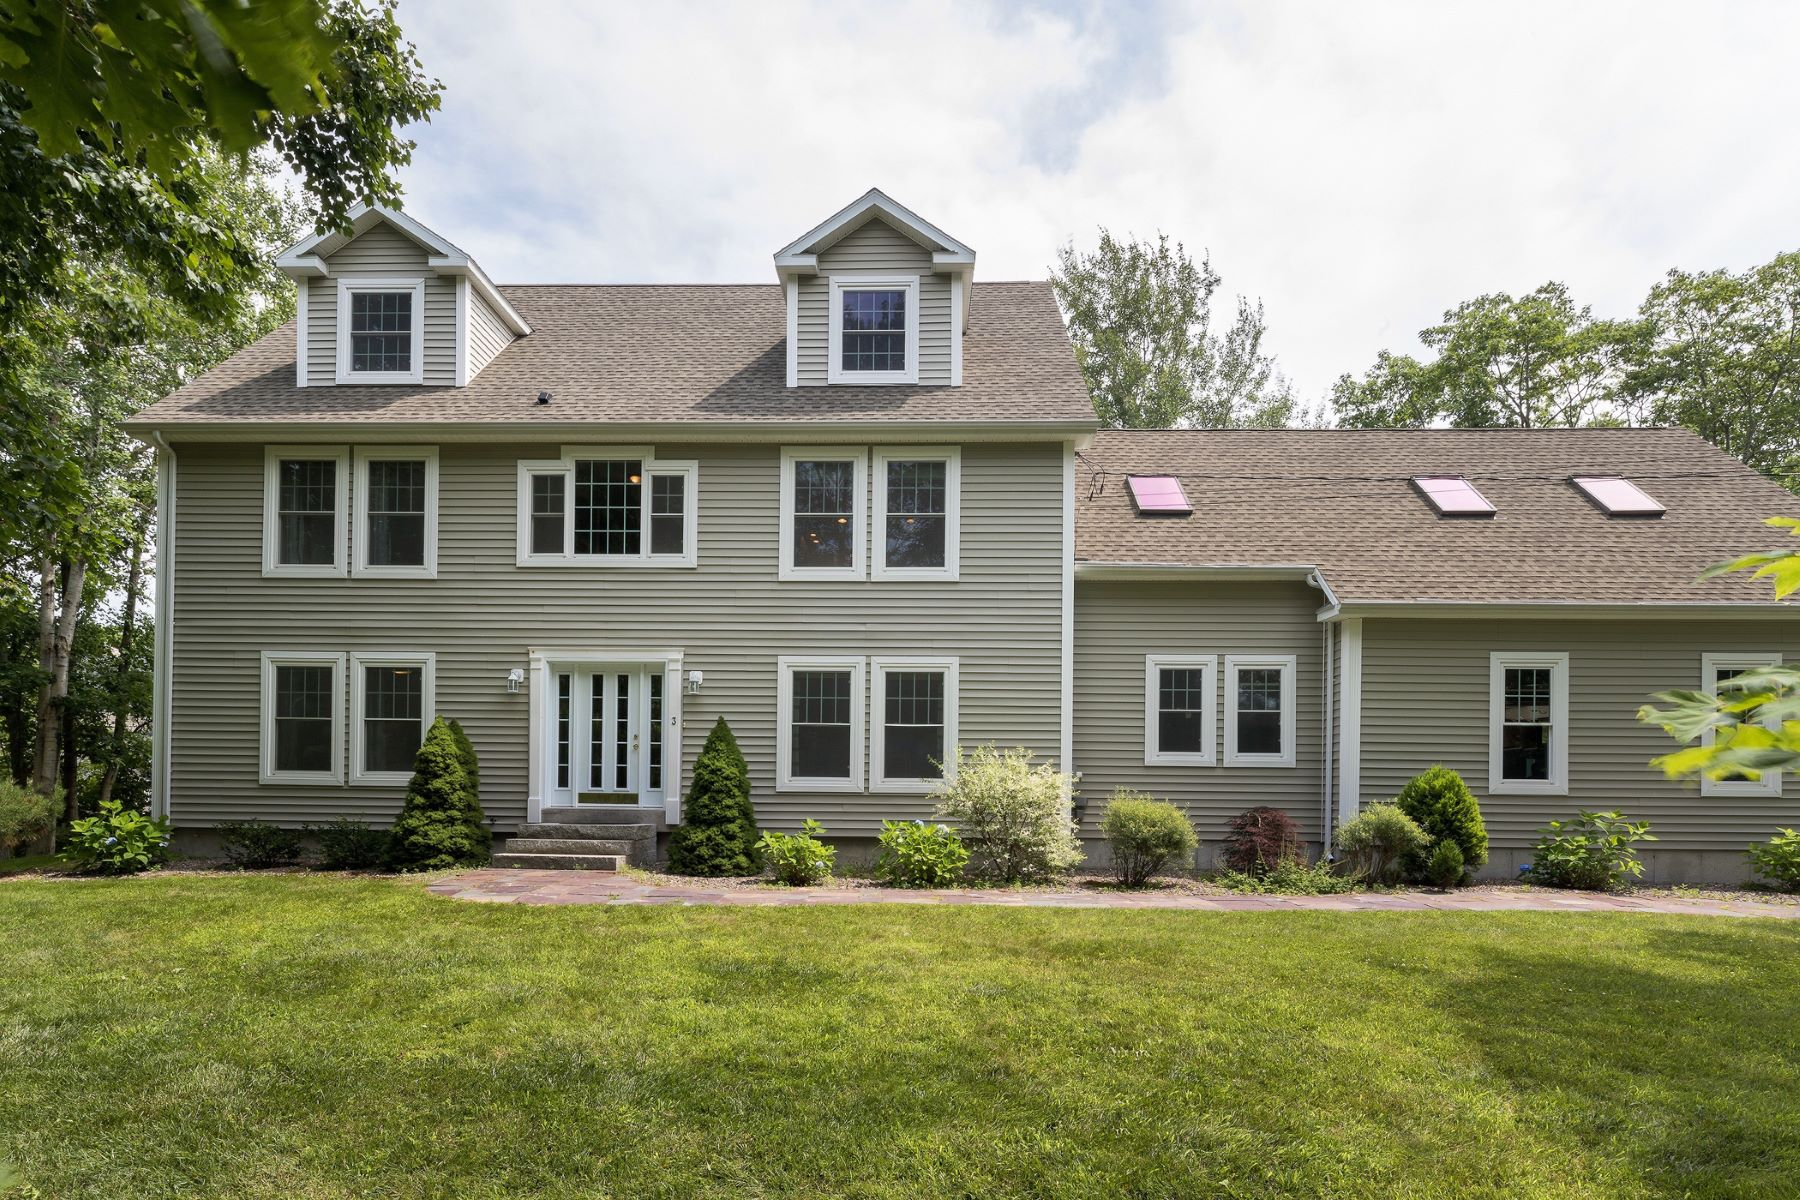 Single Family Home for Sale at 3 Brackett Point Road Biddeford, Maine, 04005 United States